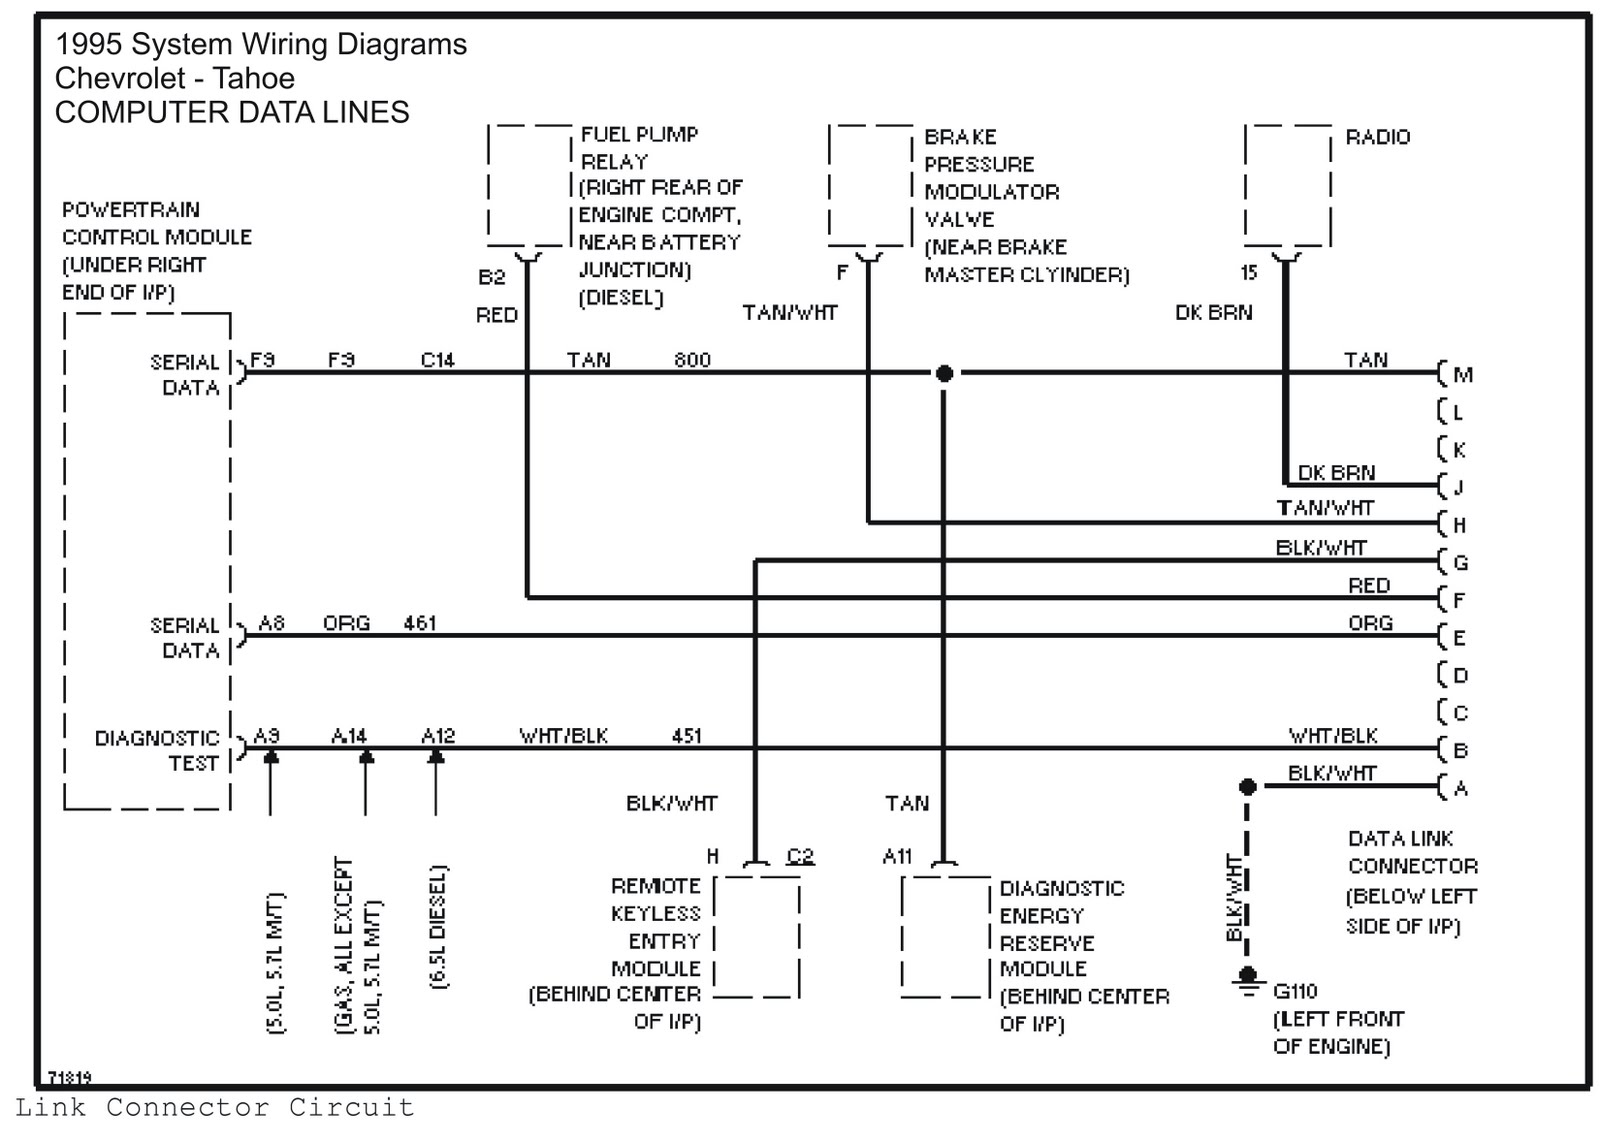 2007 chevrolet tahoe wiring diagrams schematic diagram Automotive Wiring Diagrams 2001 Tahoe 2001 chevy tahoe engine diagram wiring diagram detailed 2007 escalade headlight wiring diagram 96 tahoe engine